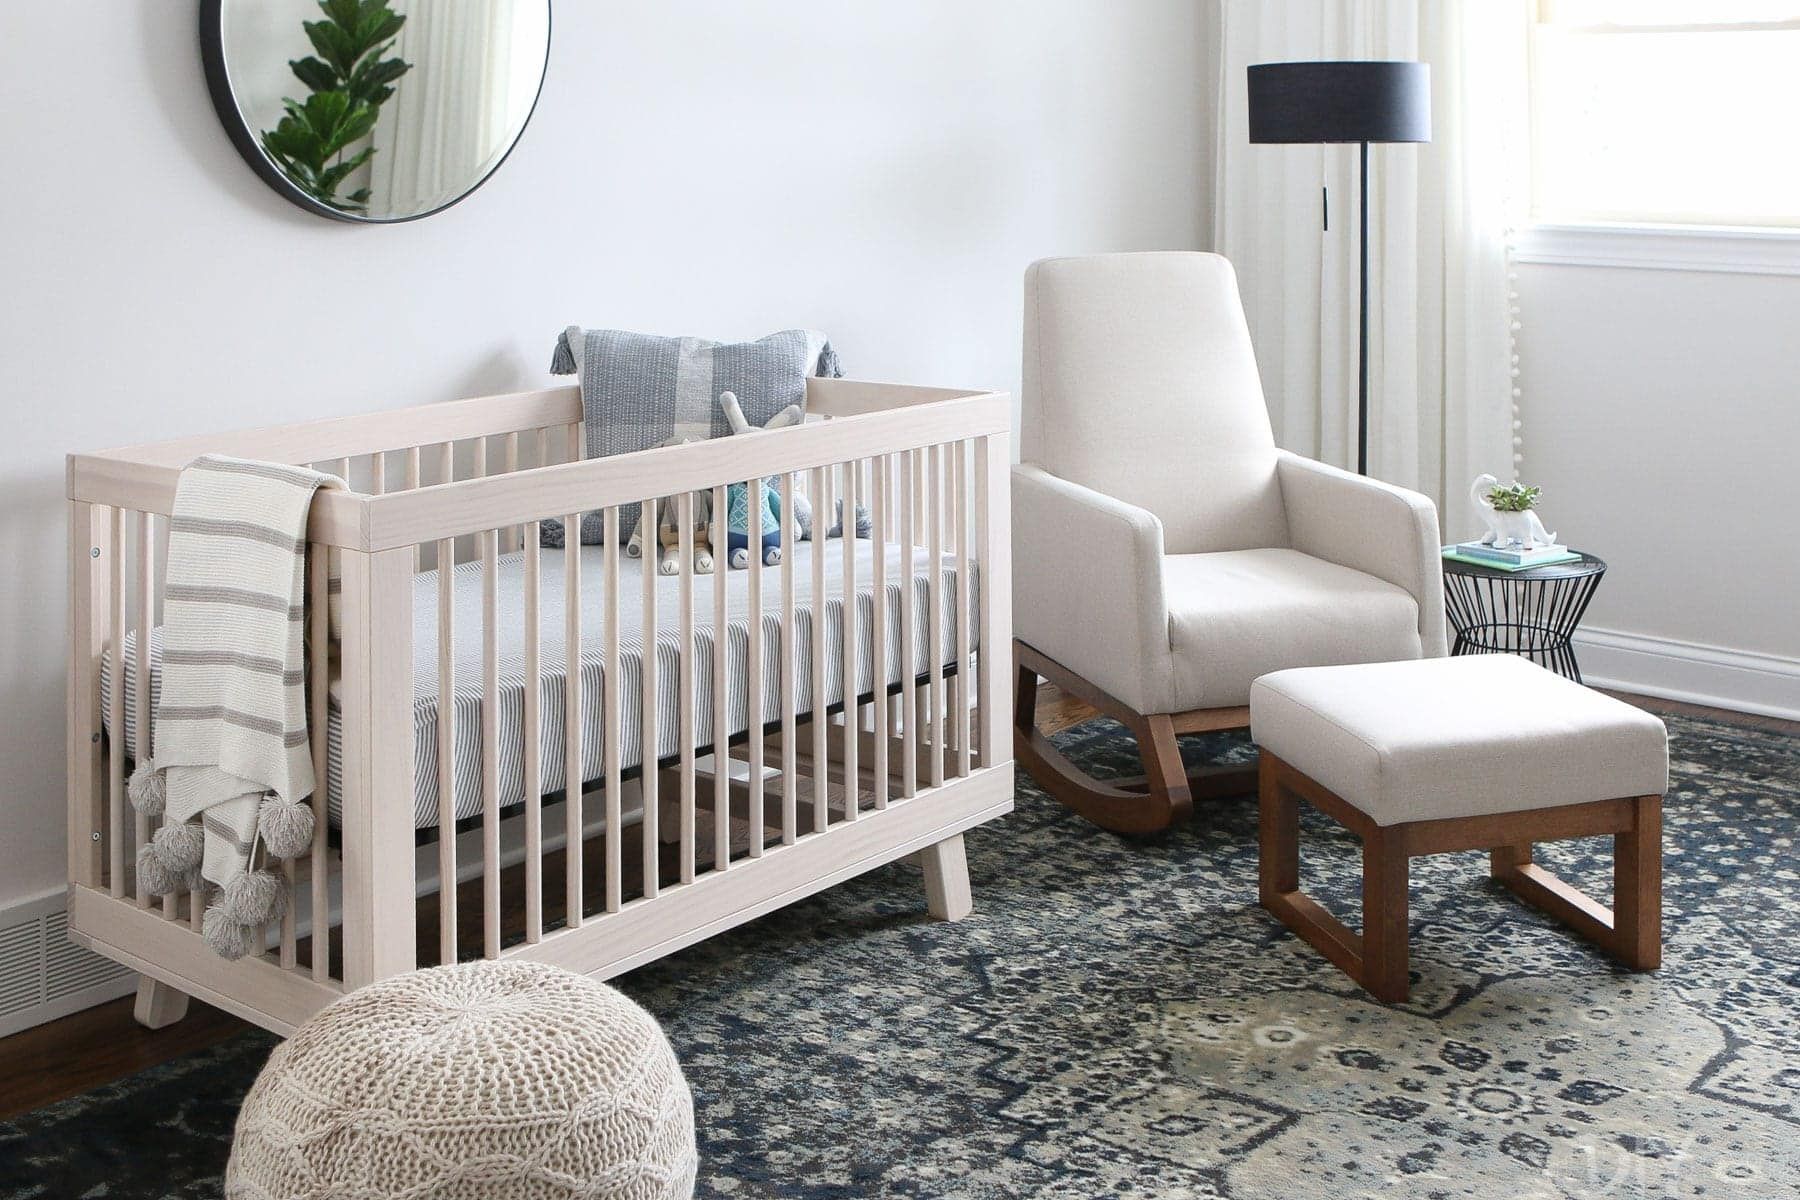 Babyletto Crib and an Amazon Rocker